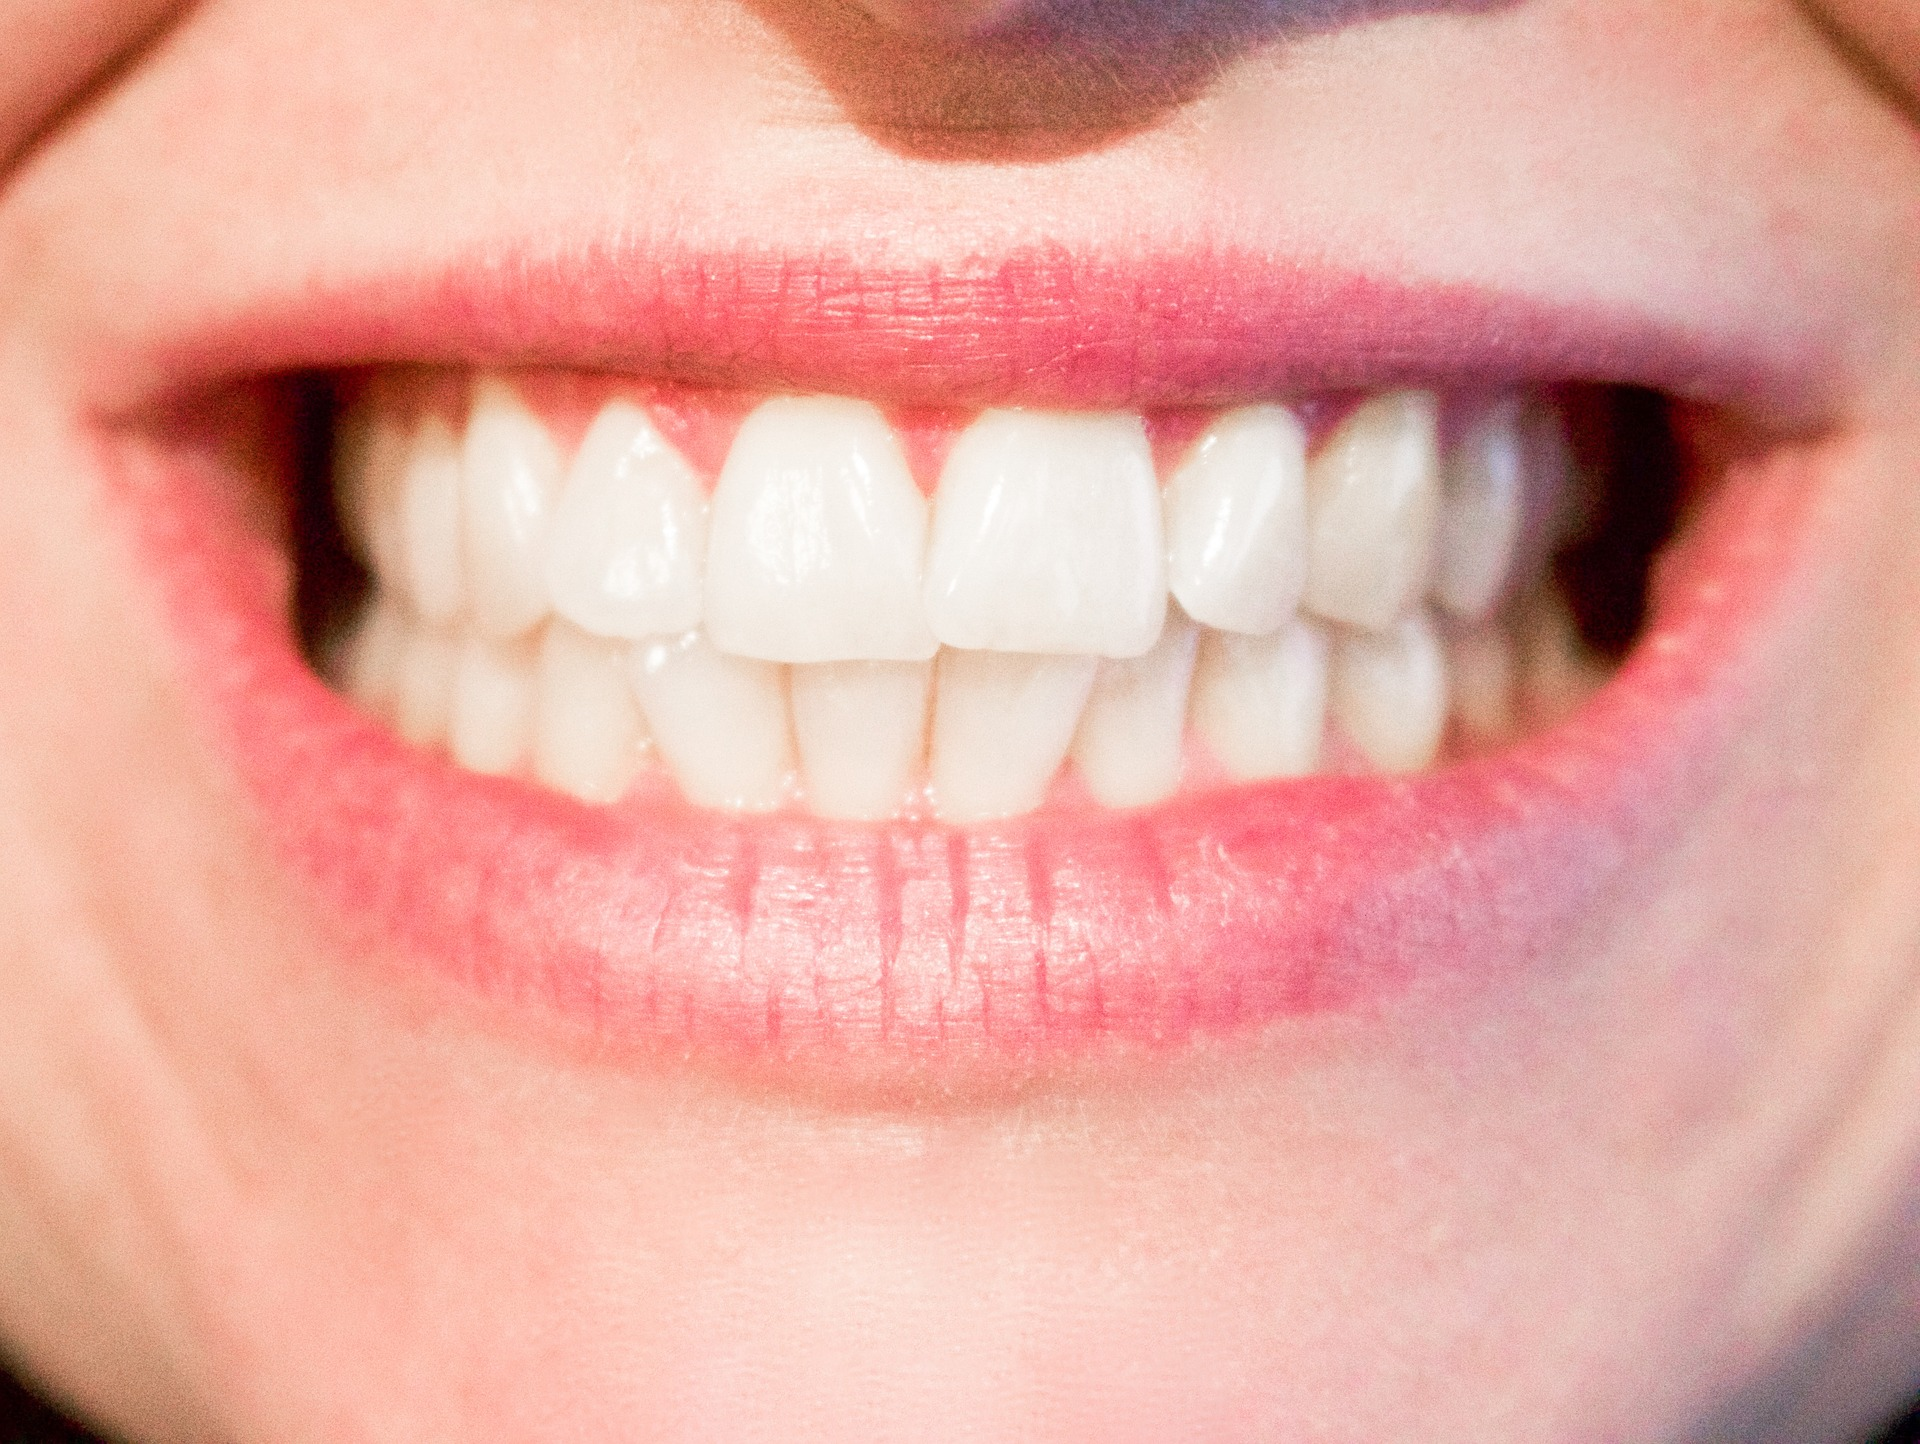 Cleaner Teeth Contribute to Healthier Aging